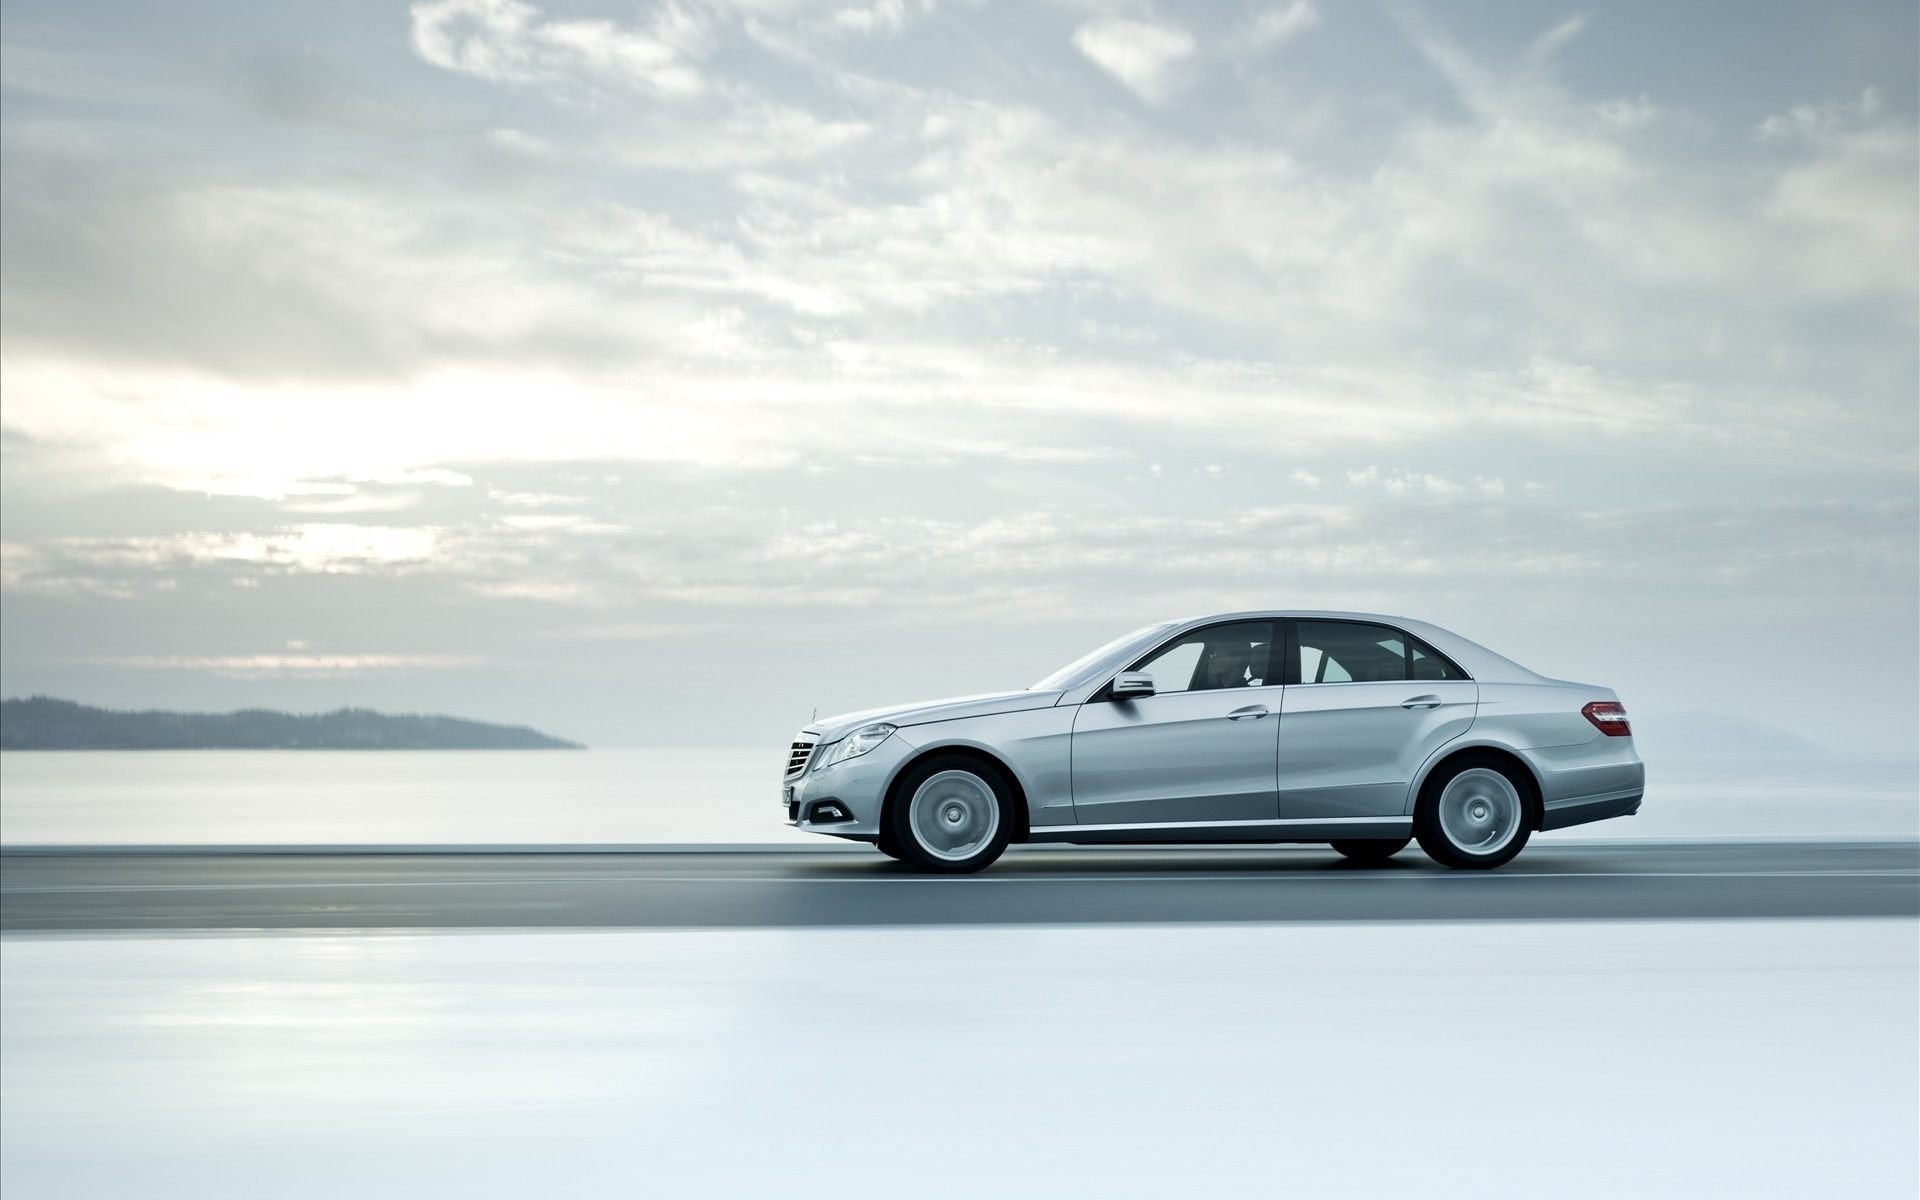 Nice photo of mercedes benz e class picture of auto for Nice mercedes benz